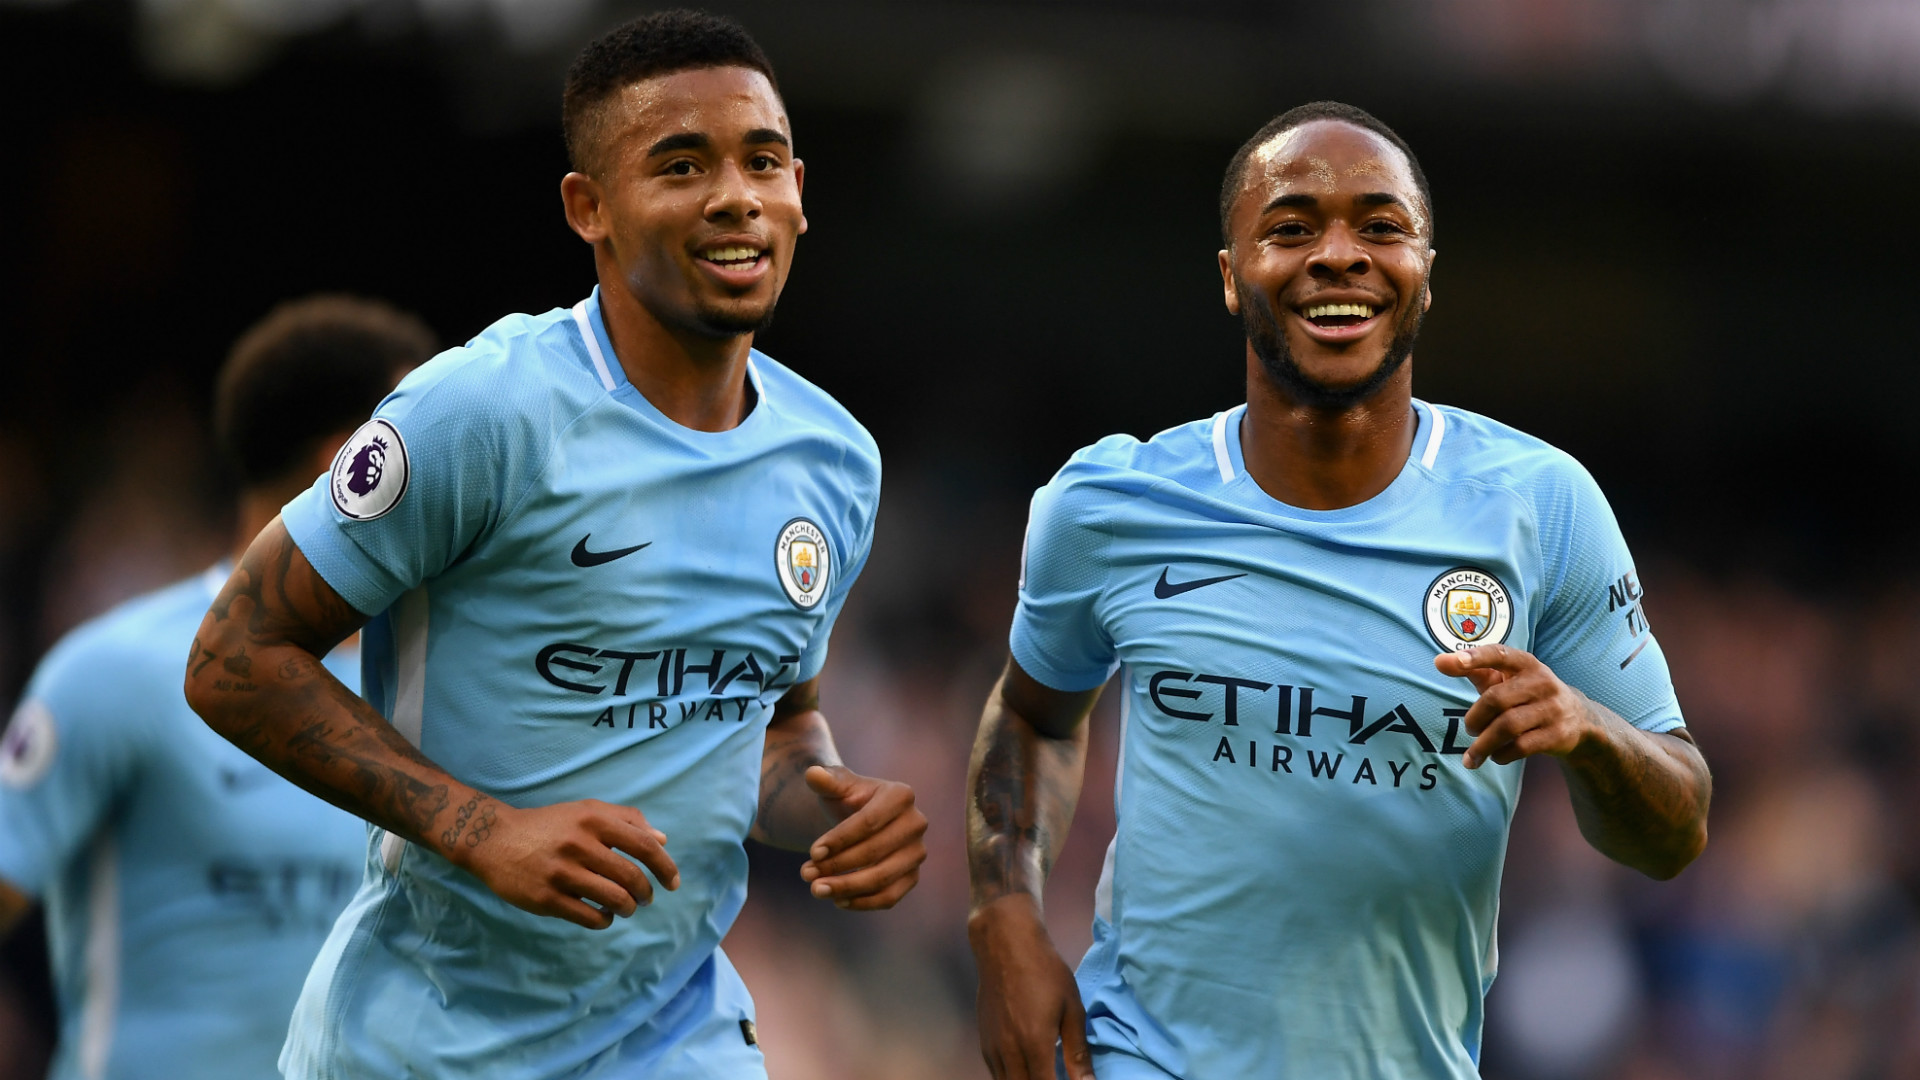 Paul Ince states his prediction for Man City v Arsenal